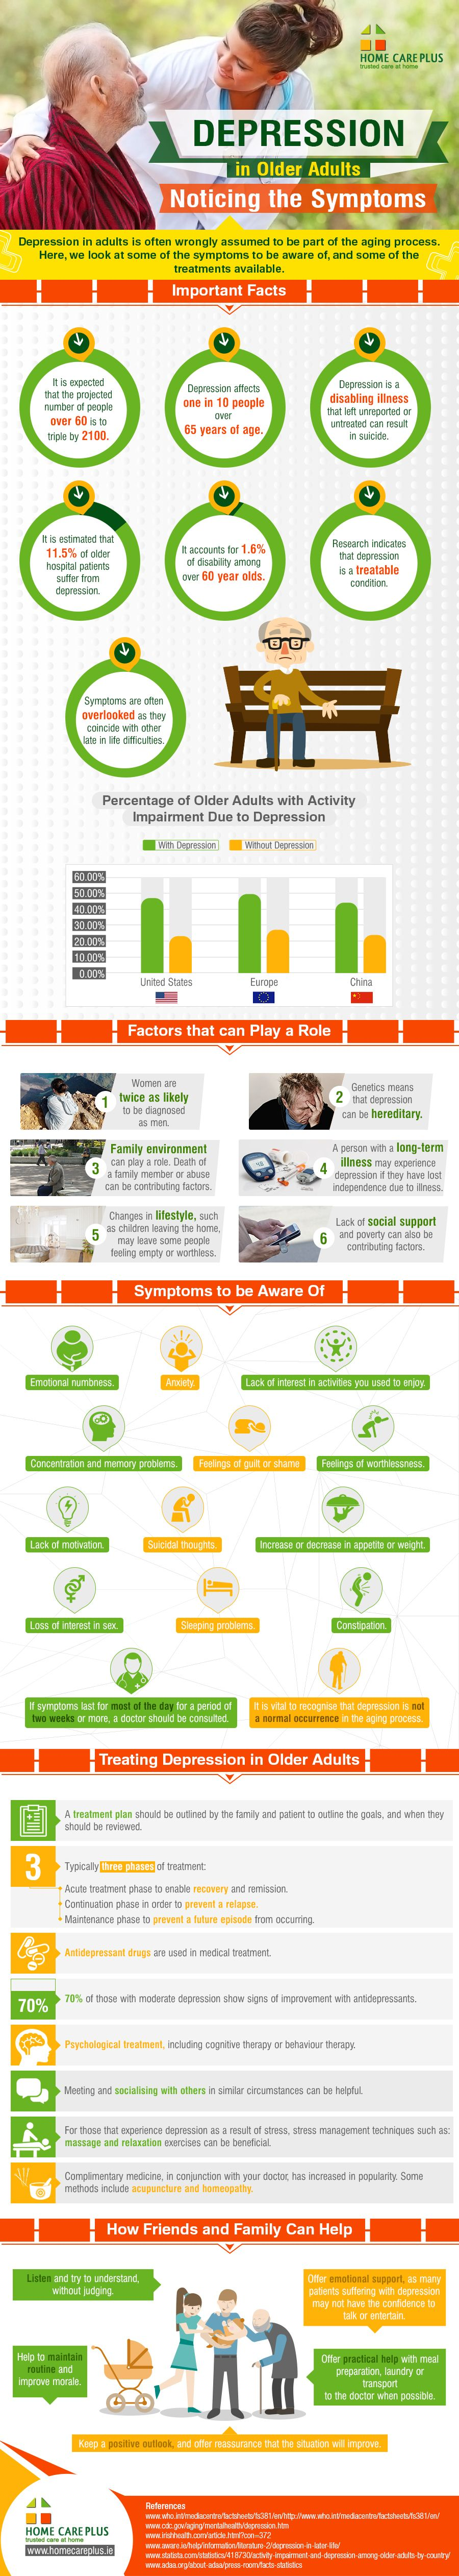 Did you know that 1 in 10 seniors has Depression? [Infographic]